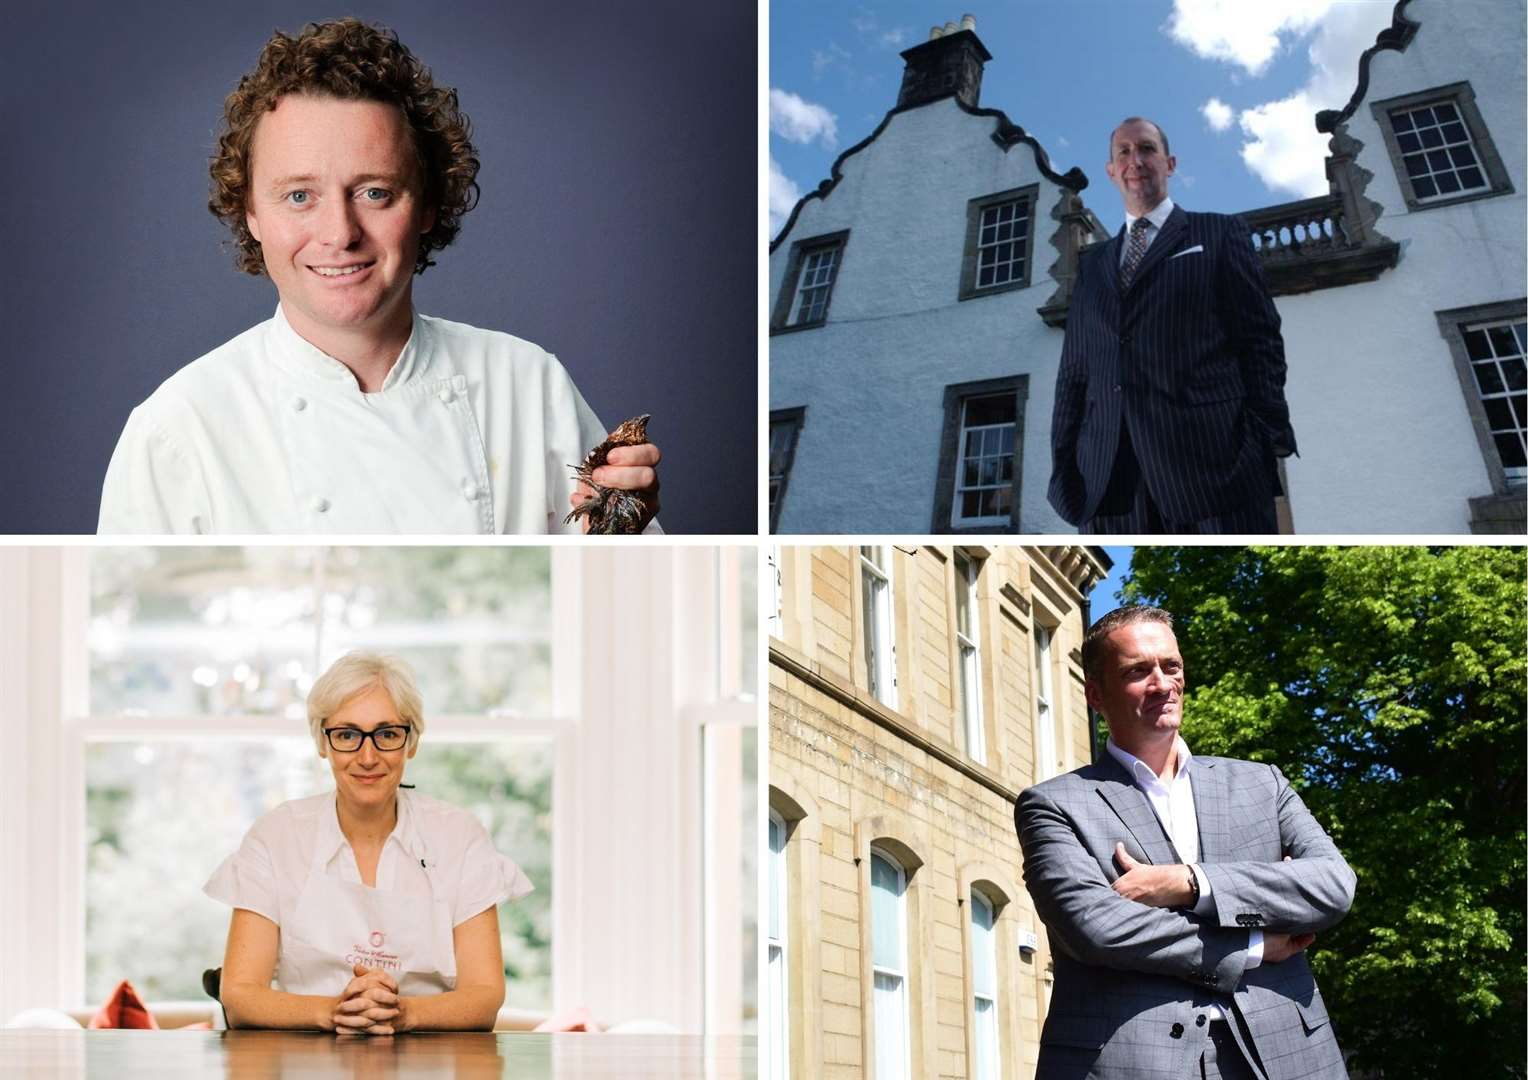 Amiong the well known hospitality figures supporting the campaign are (top left to right) Tom Kitchin and James Thomson and (bottom) Carina Contini and Nic Wood.